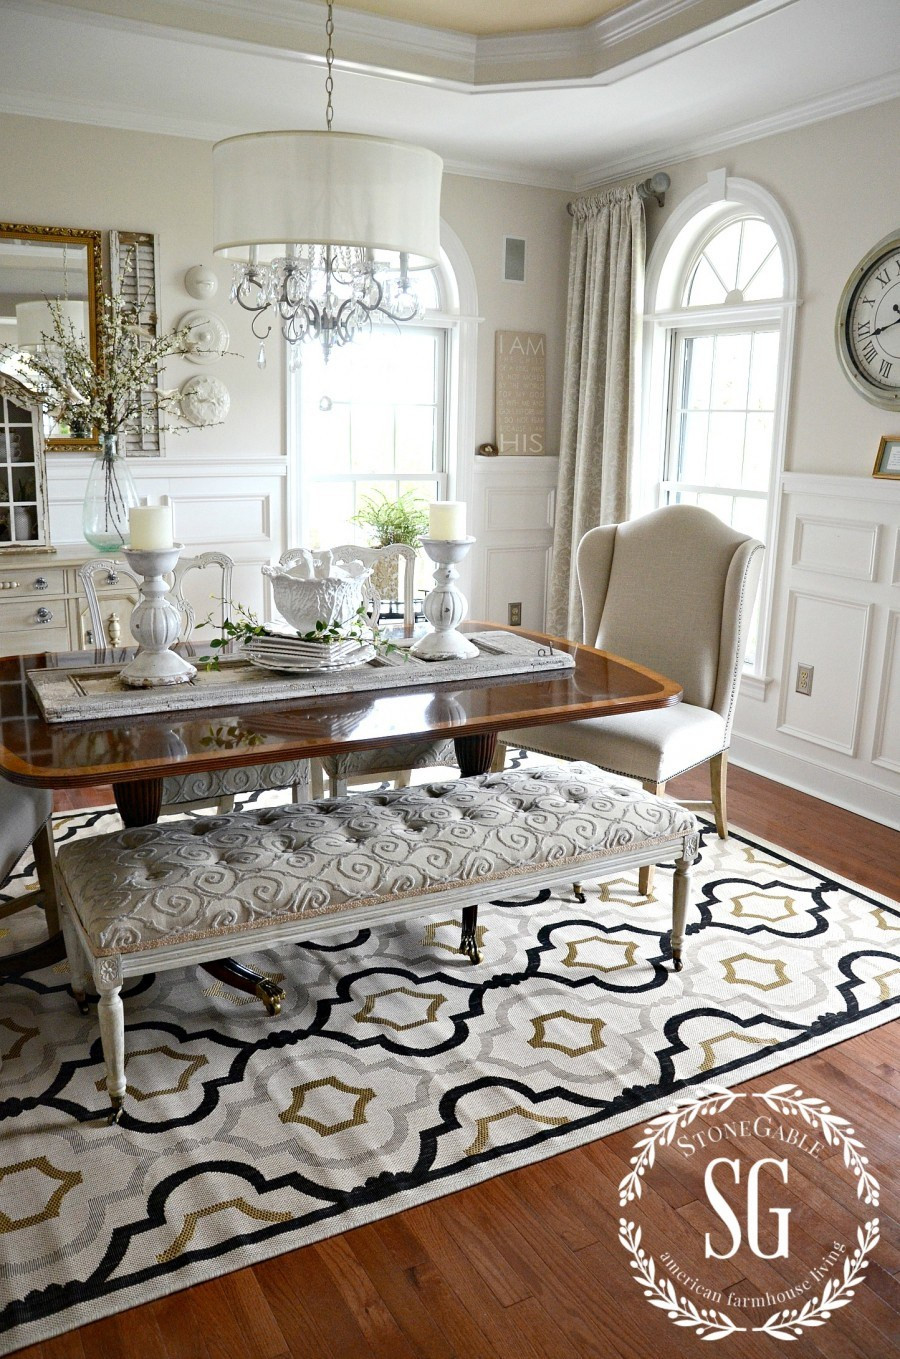 Best ideas about Rugs For Dining Room . Save or Pin 5 RULES FOR CHOOSING THE PERFECT DINING ROOM RUG StoneGable Now.